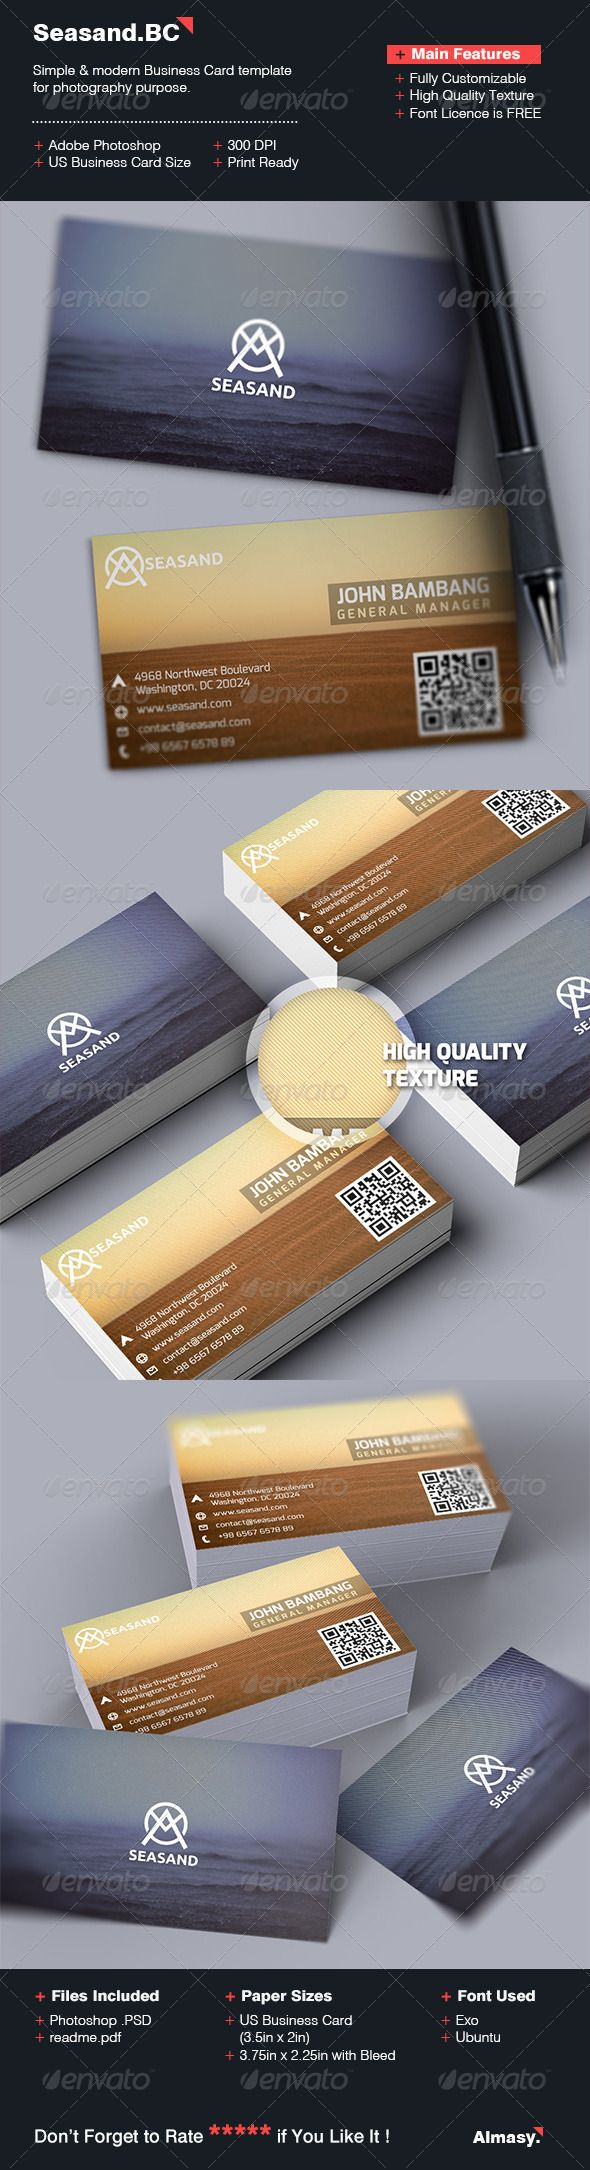 Print business cards washington dc images card design and card 102 best print templates images on pinterest print templates 102 best print templates images on pinterest magicingreecefo Images